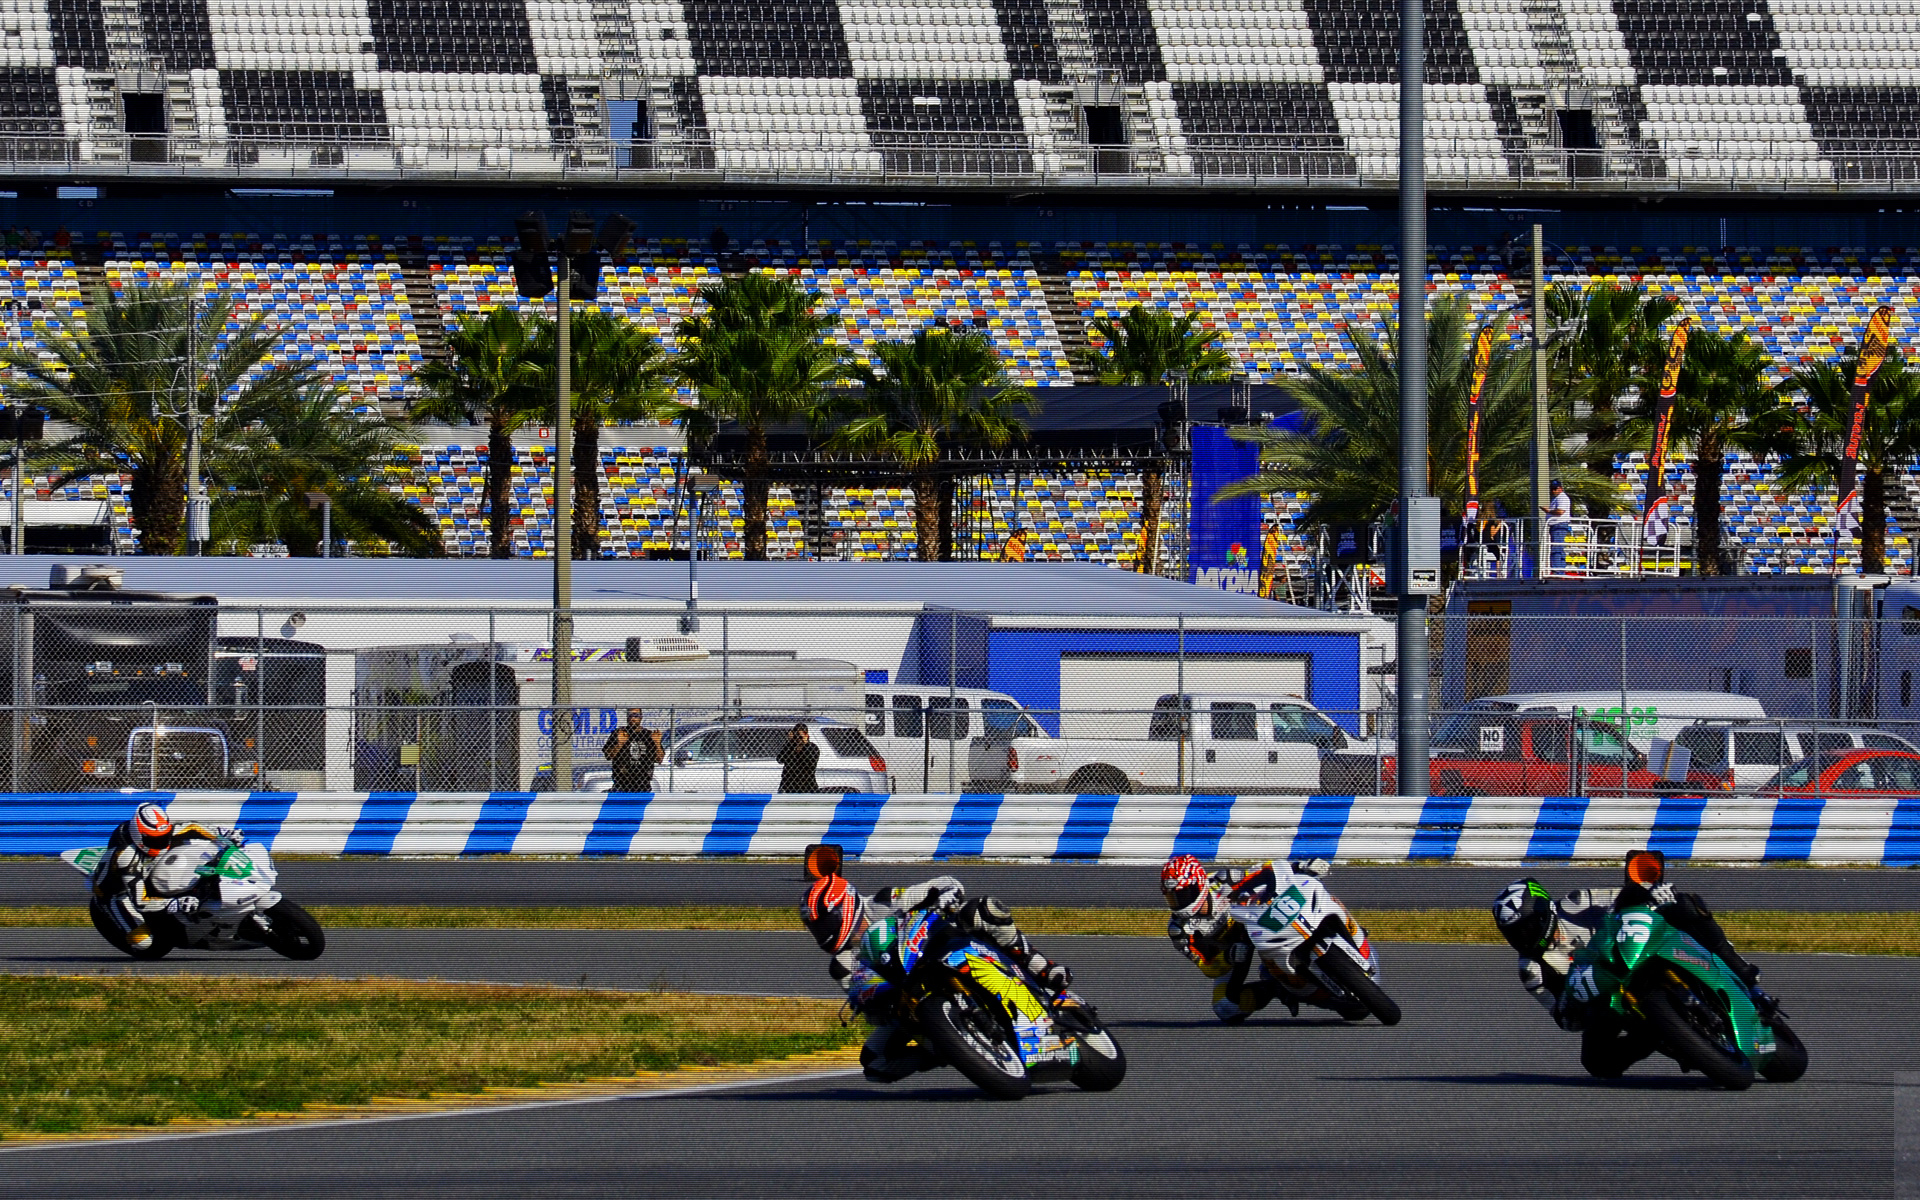 La Bike Week de Daytona